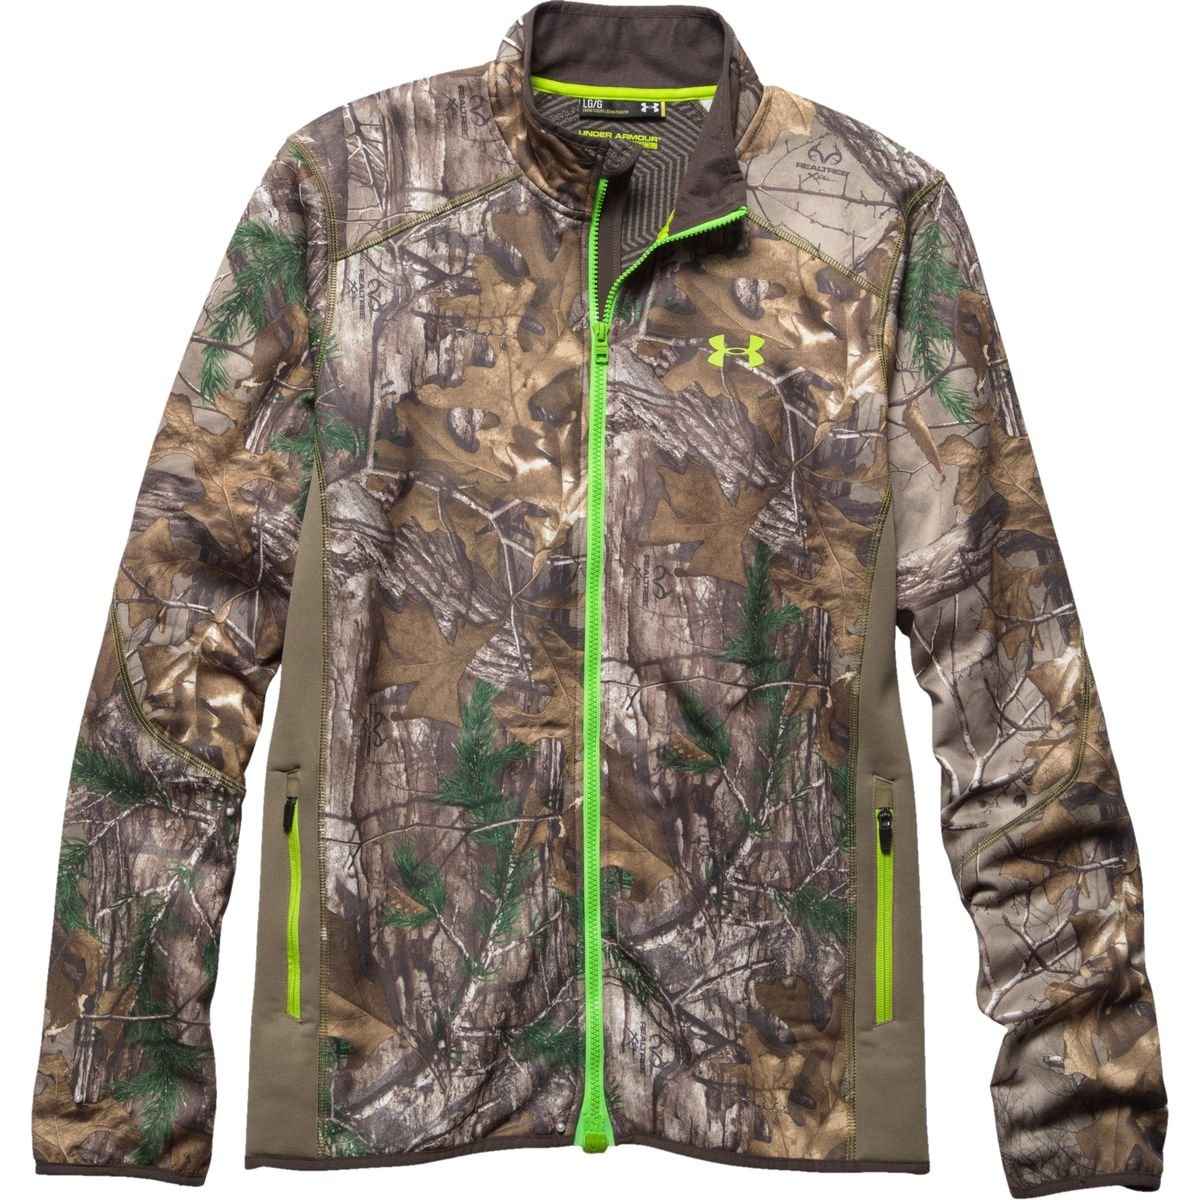 ebe64d001f293 Amazon.com: Under Armour Coldgear Infrared Scent Control Fleece Full Zip  Jacket - Men's: Sports & Outdoors